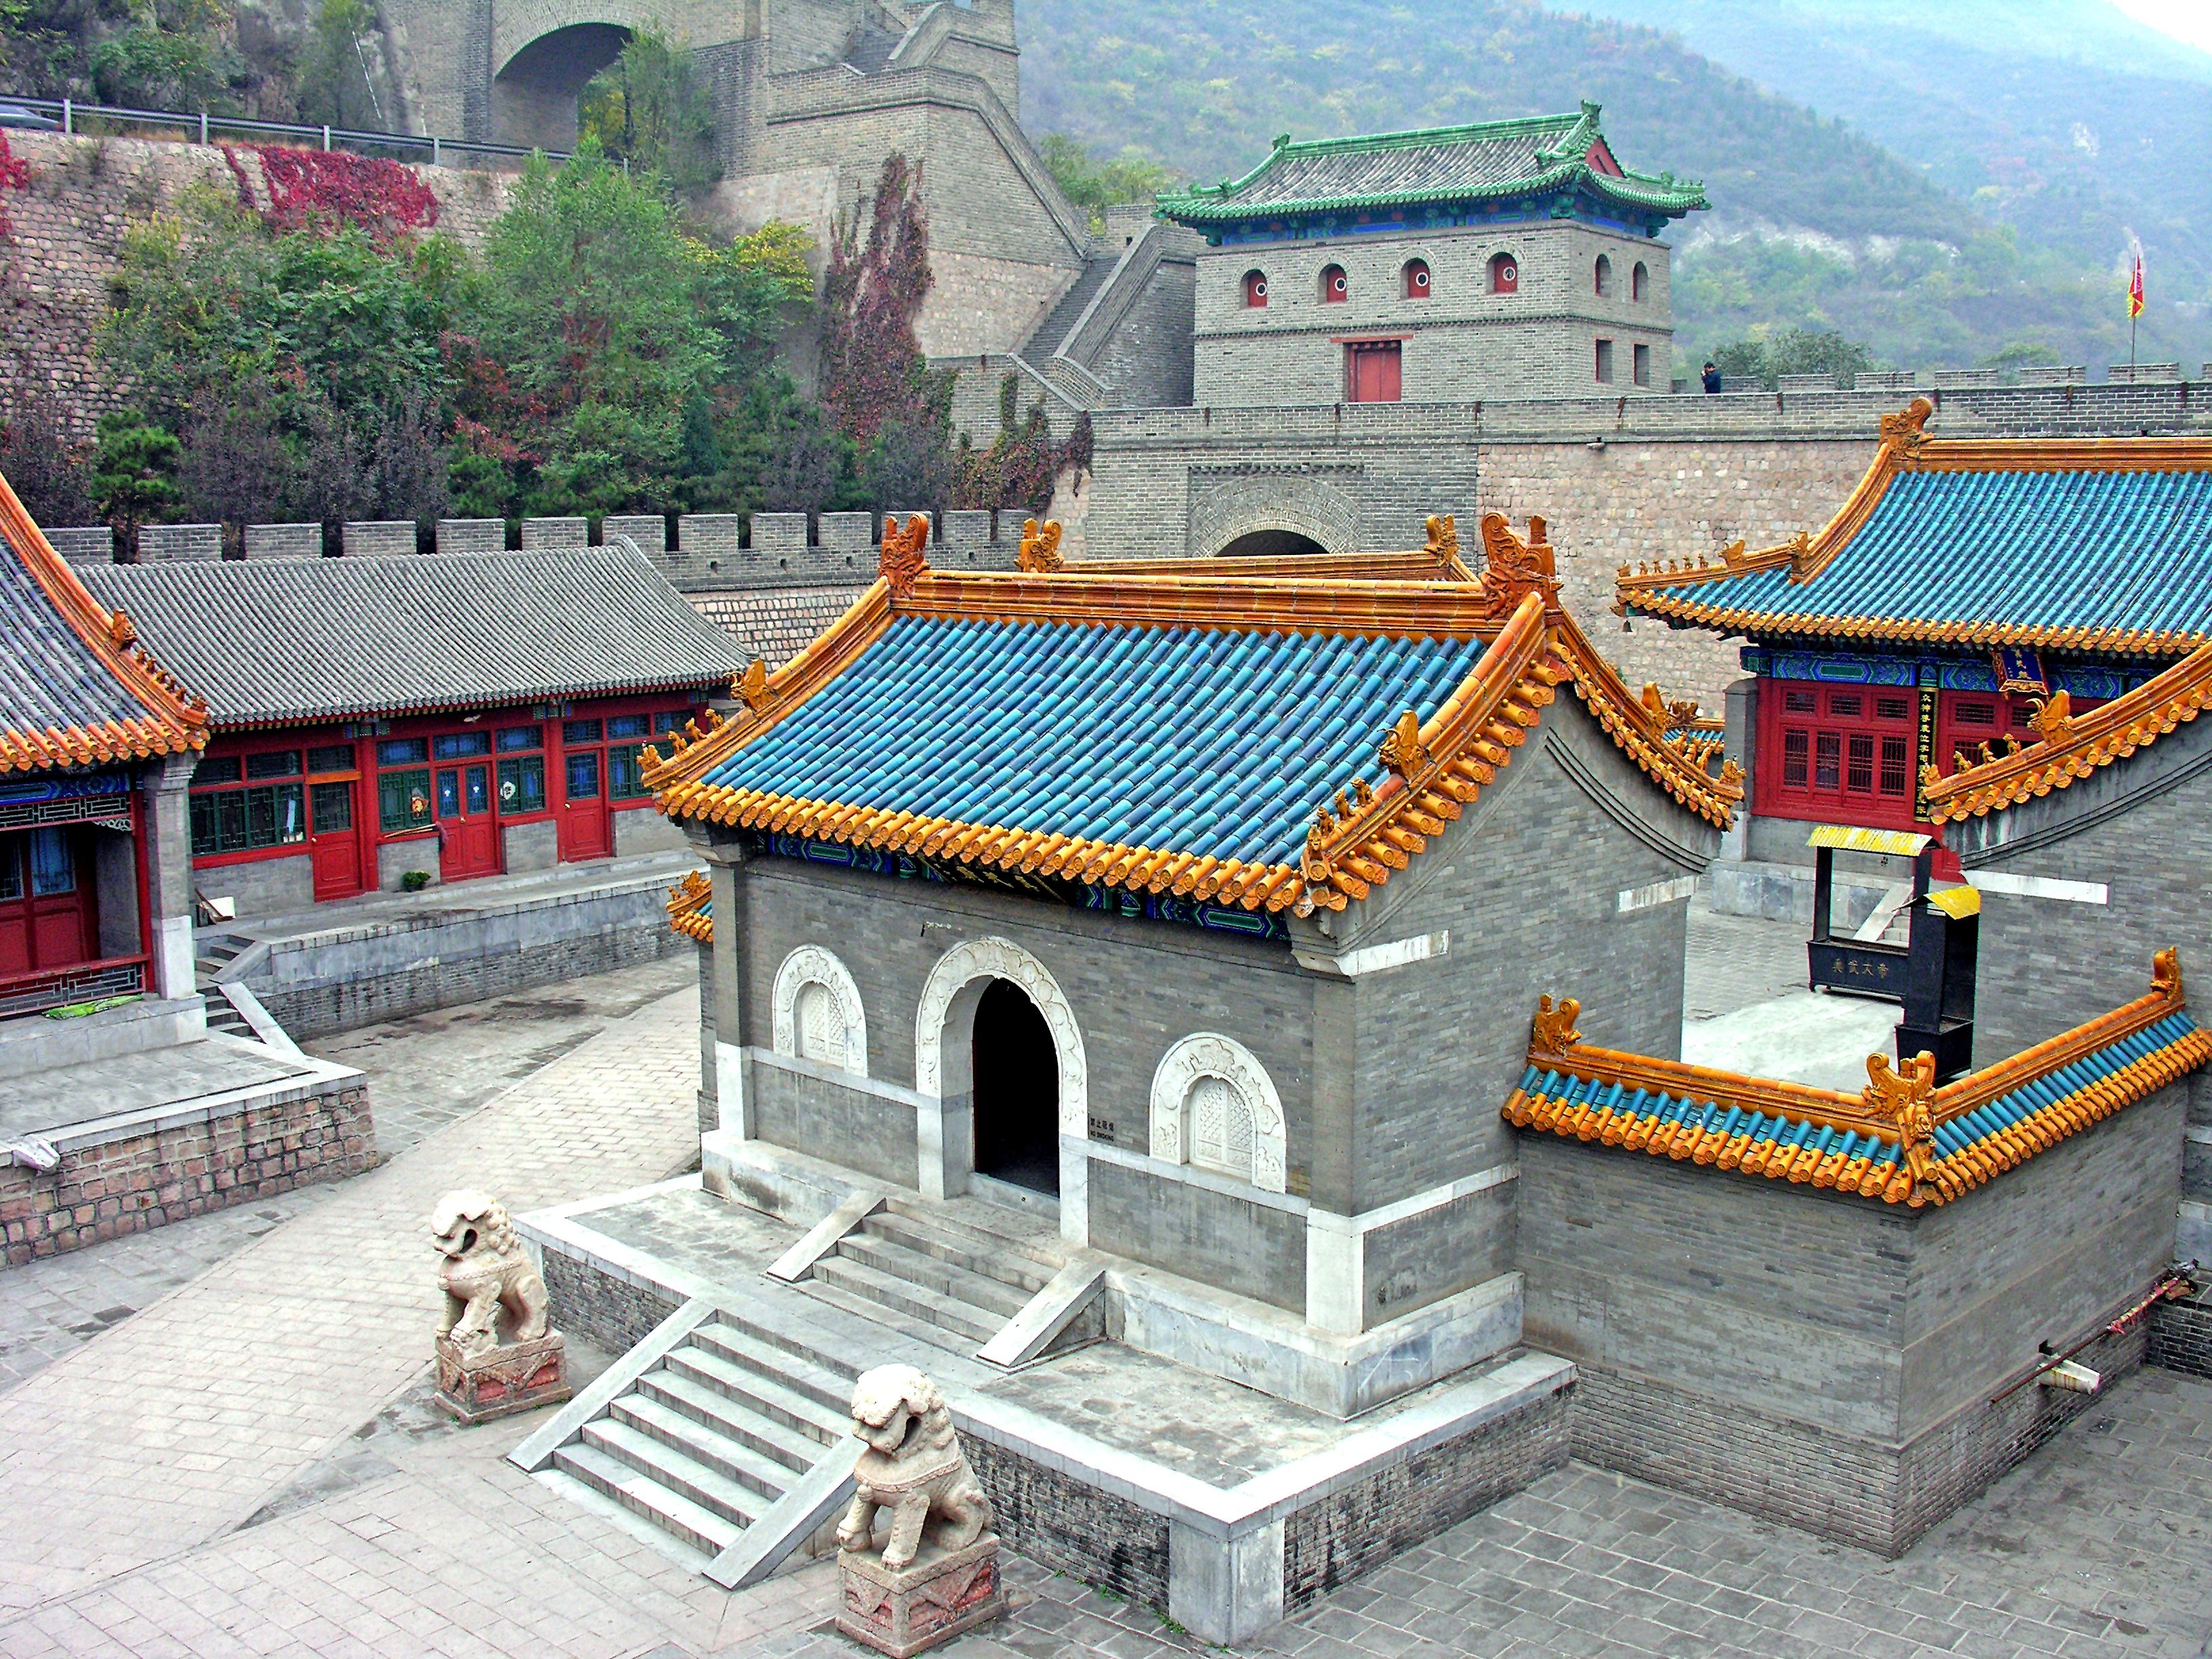 Learning Mandarin? 10 facts about Han Chinese language and culture that you should know.